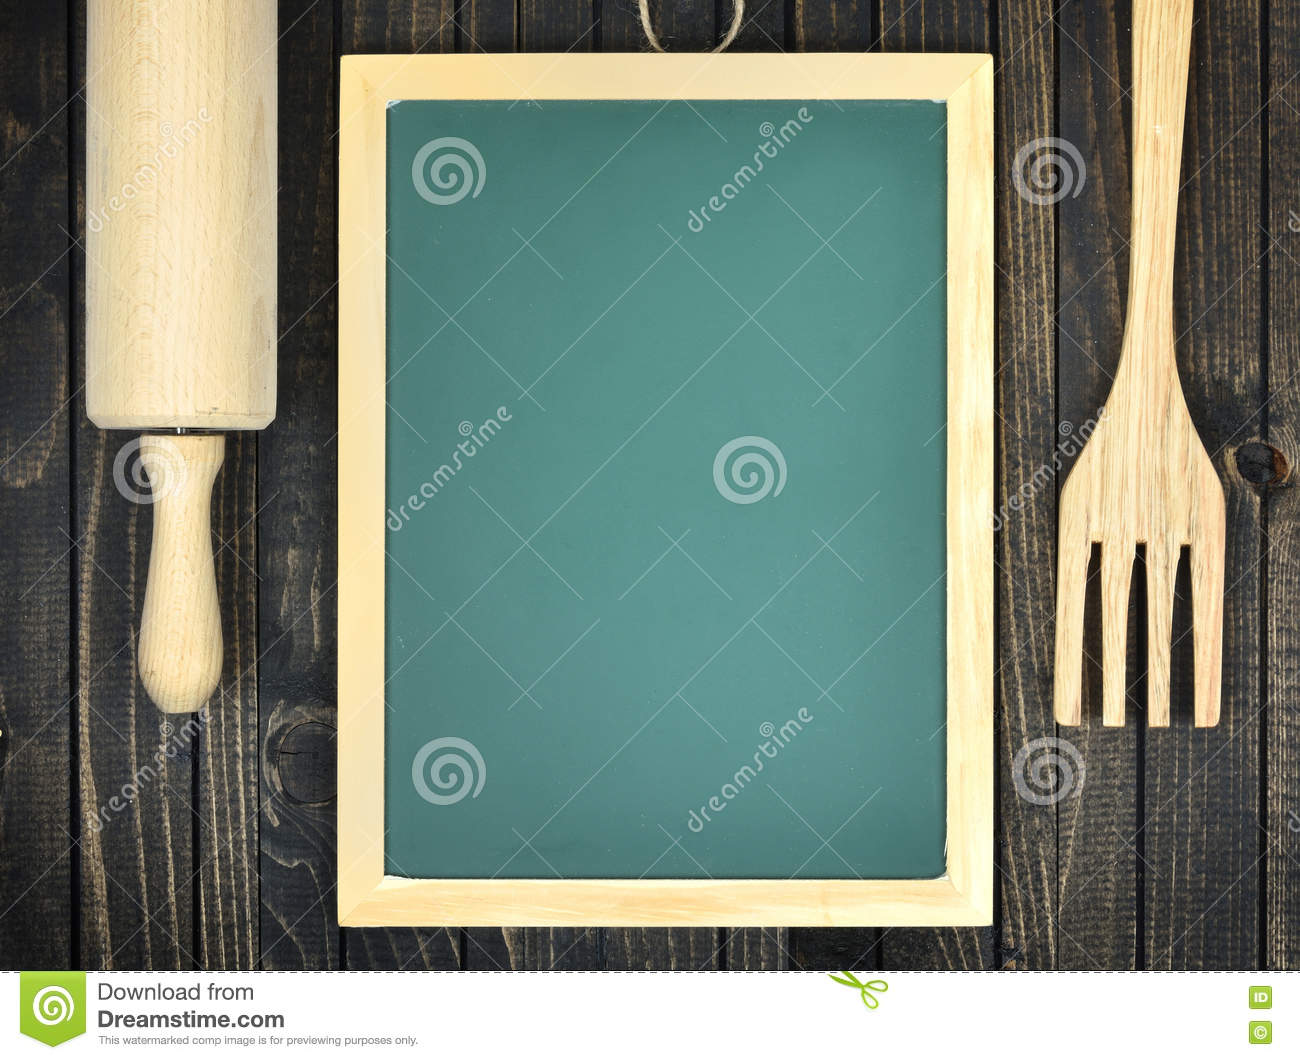 Kitchen utensils on table stock photo. Image of lesson - 76080278